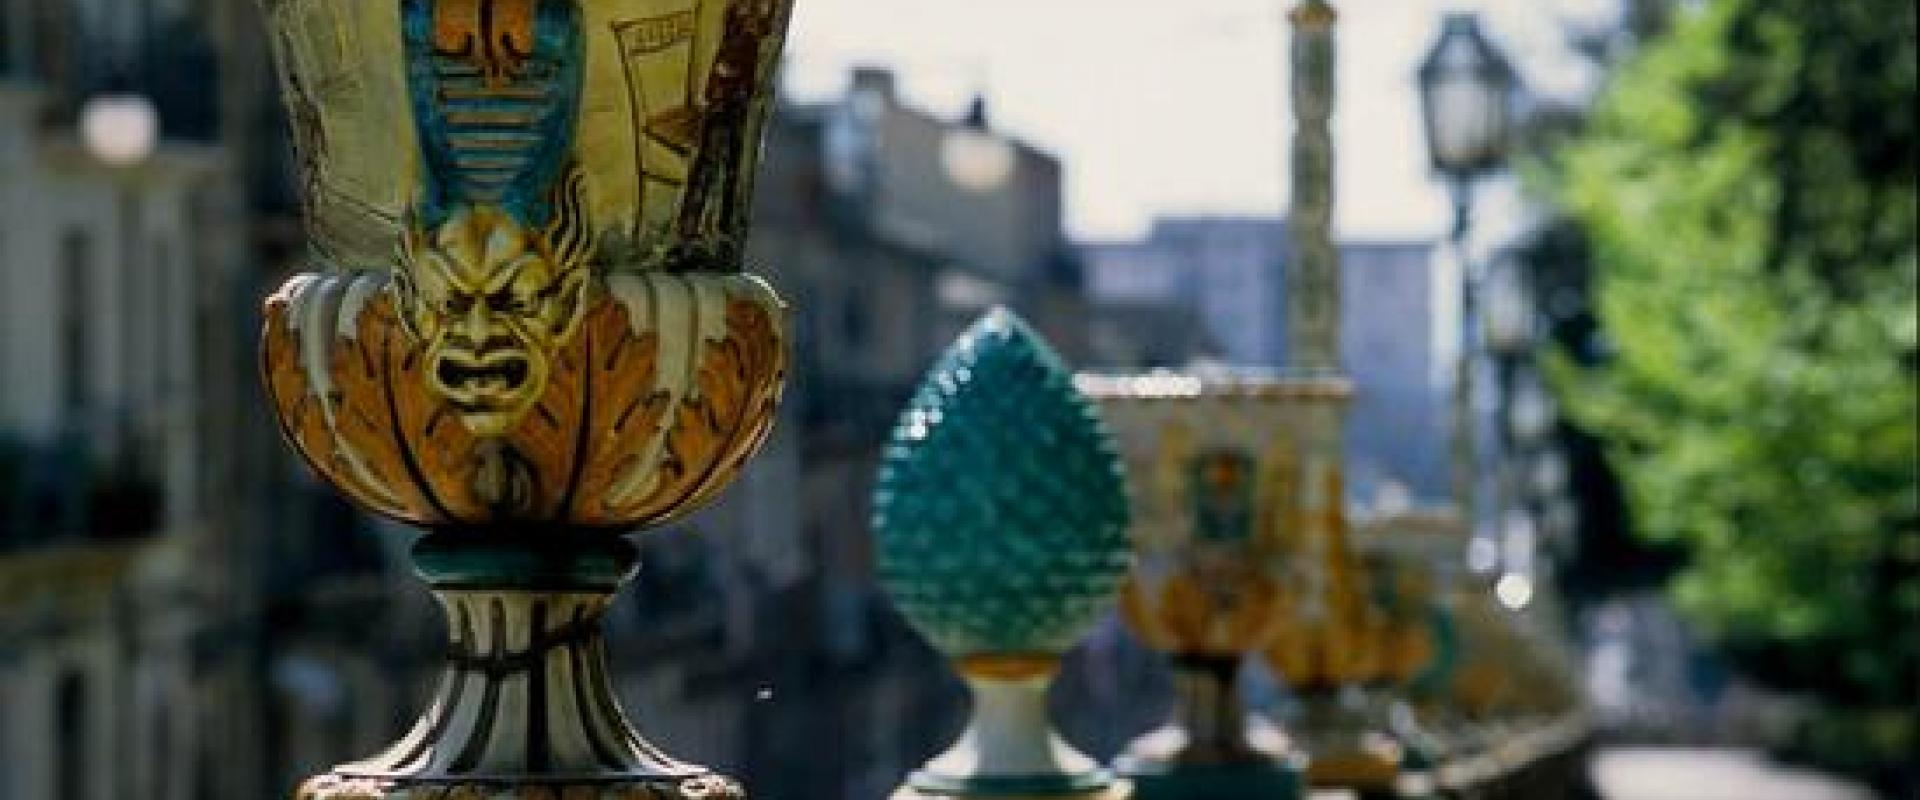 Visit of Caltagirone